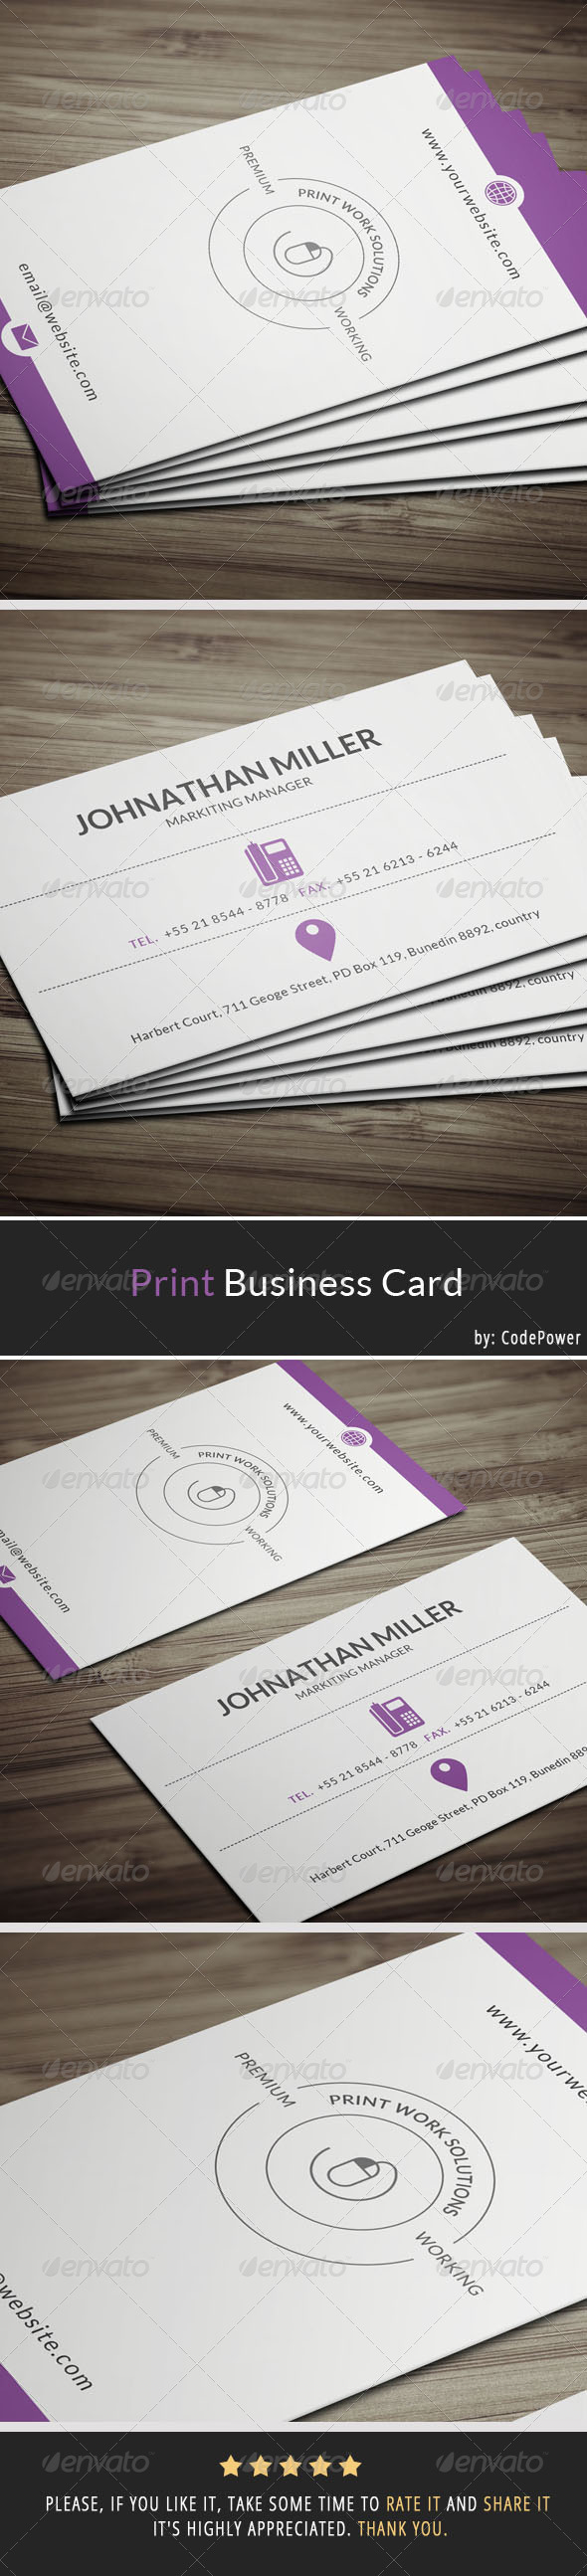 Print Business Card - Creative Business Cards